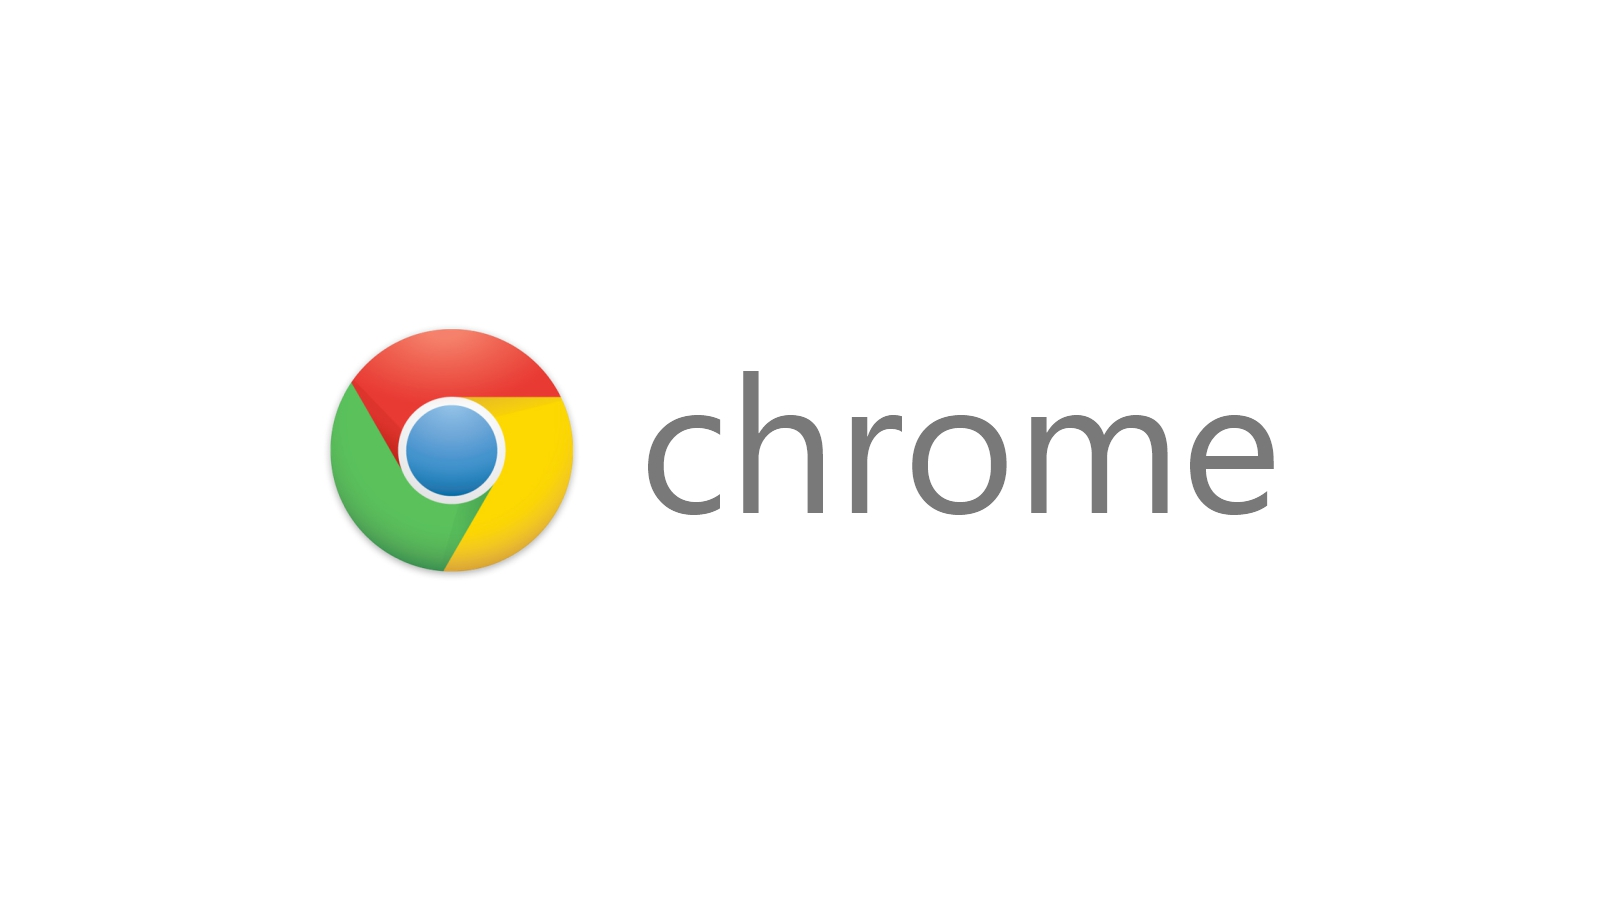 Google Releases Ad Blocking Feature in Google Chrome On Feb 15 2018